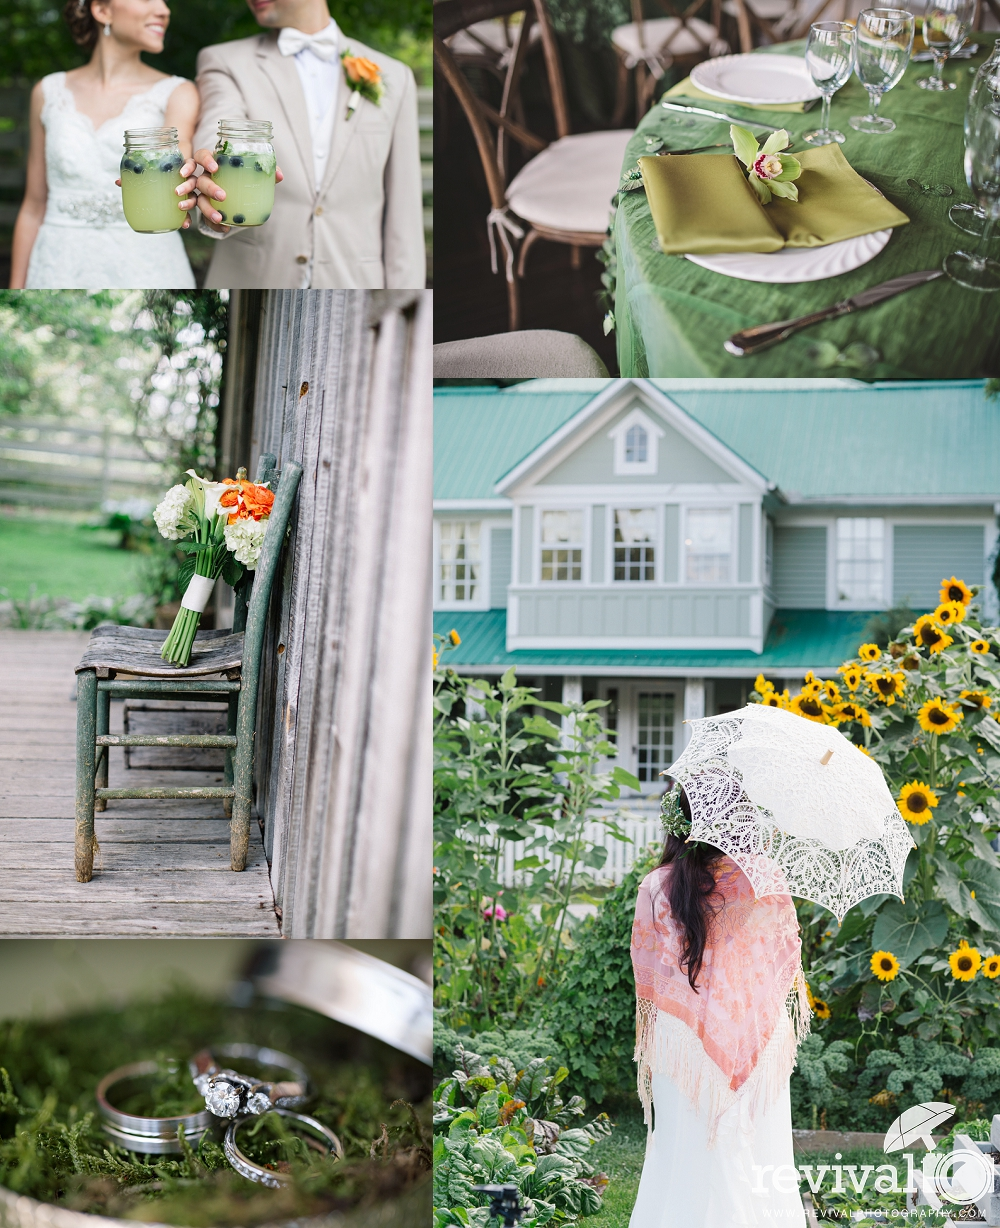 """""""I Spy Something Green"""" - Inspiration for your Wedding Day by Revival Photography www.revivalphotography.com"""